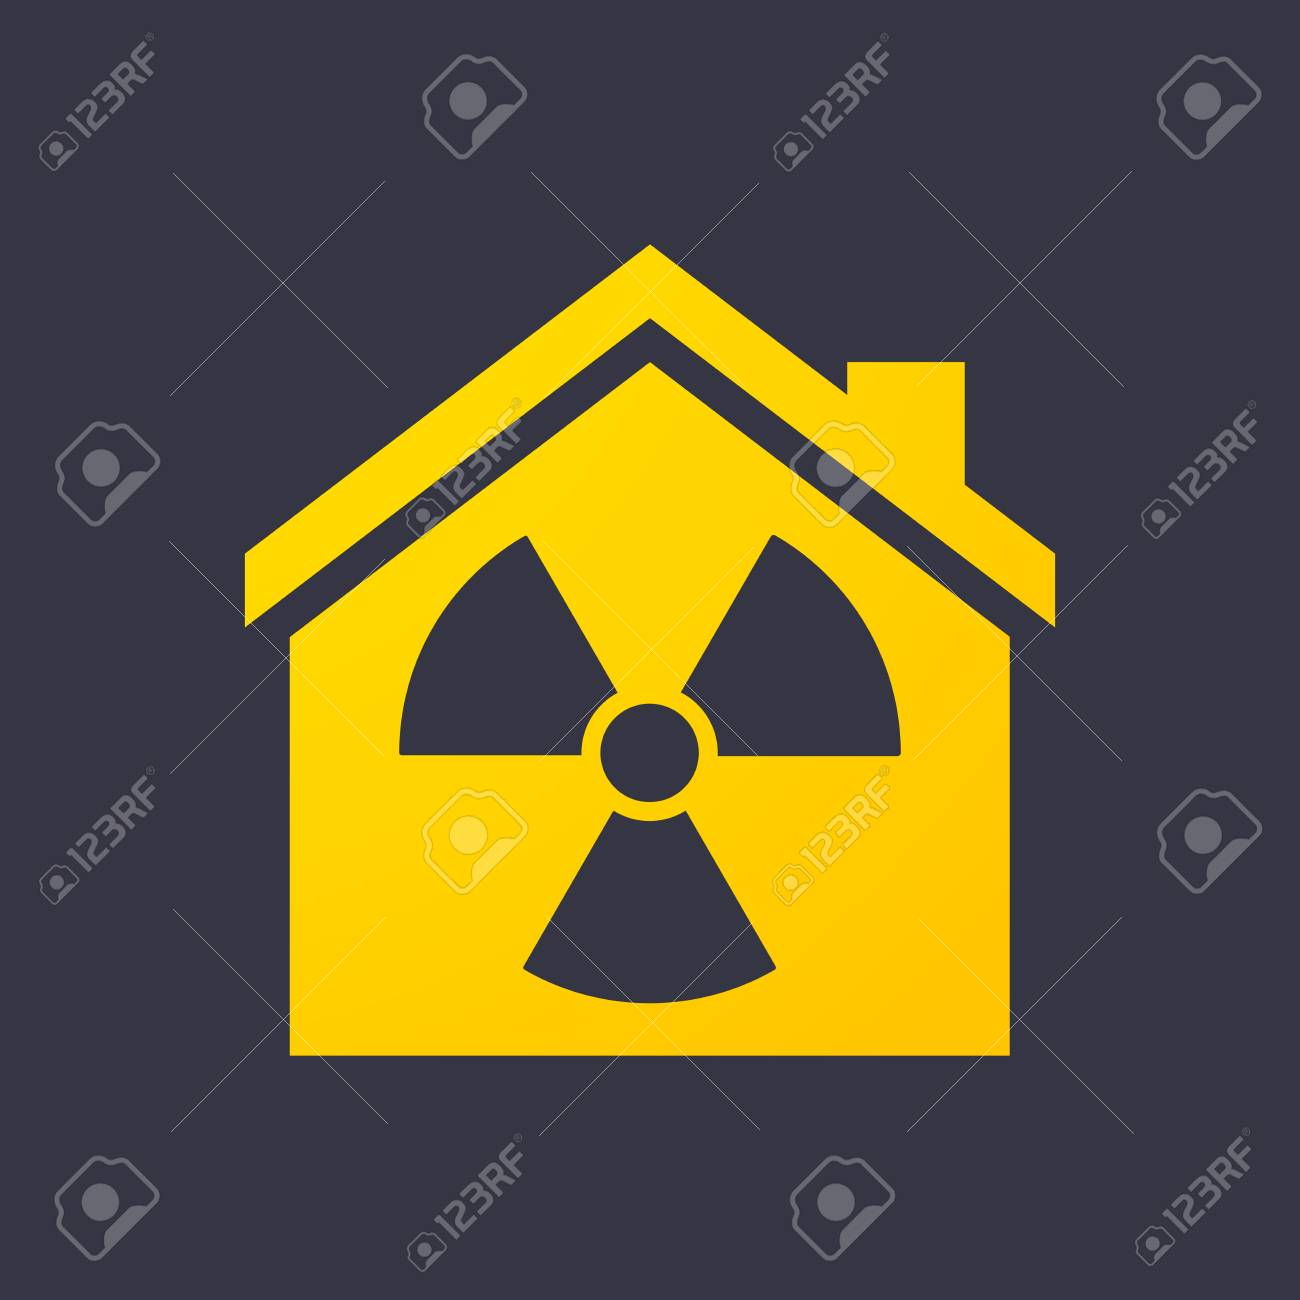 Illustration of an isolated house icon Stock Vector - 27439125